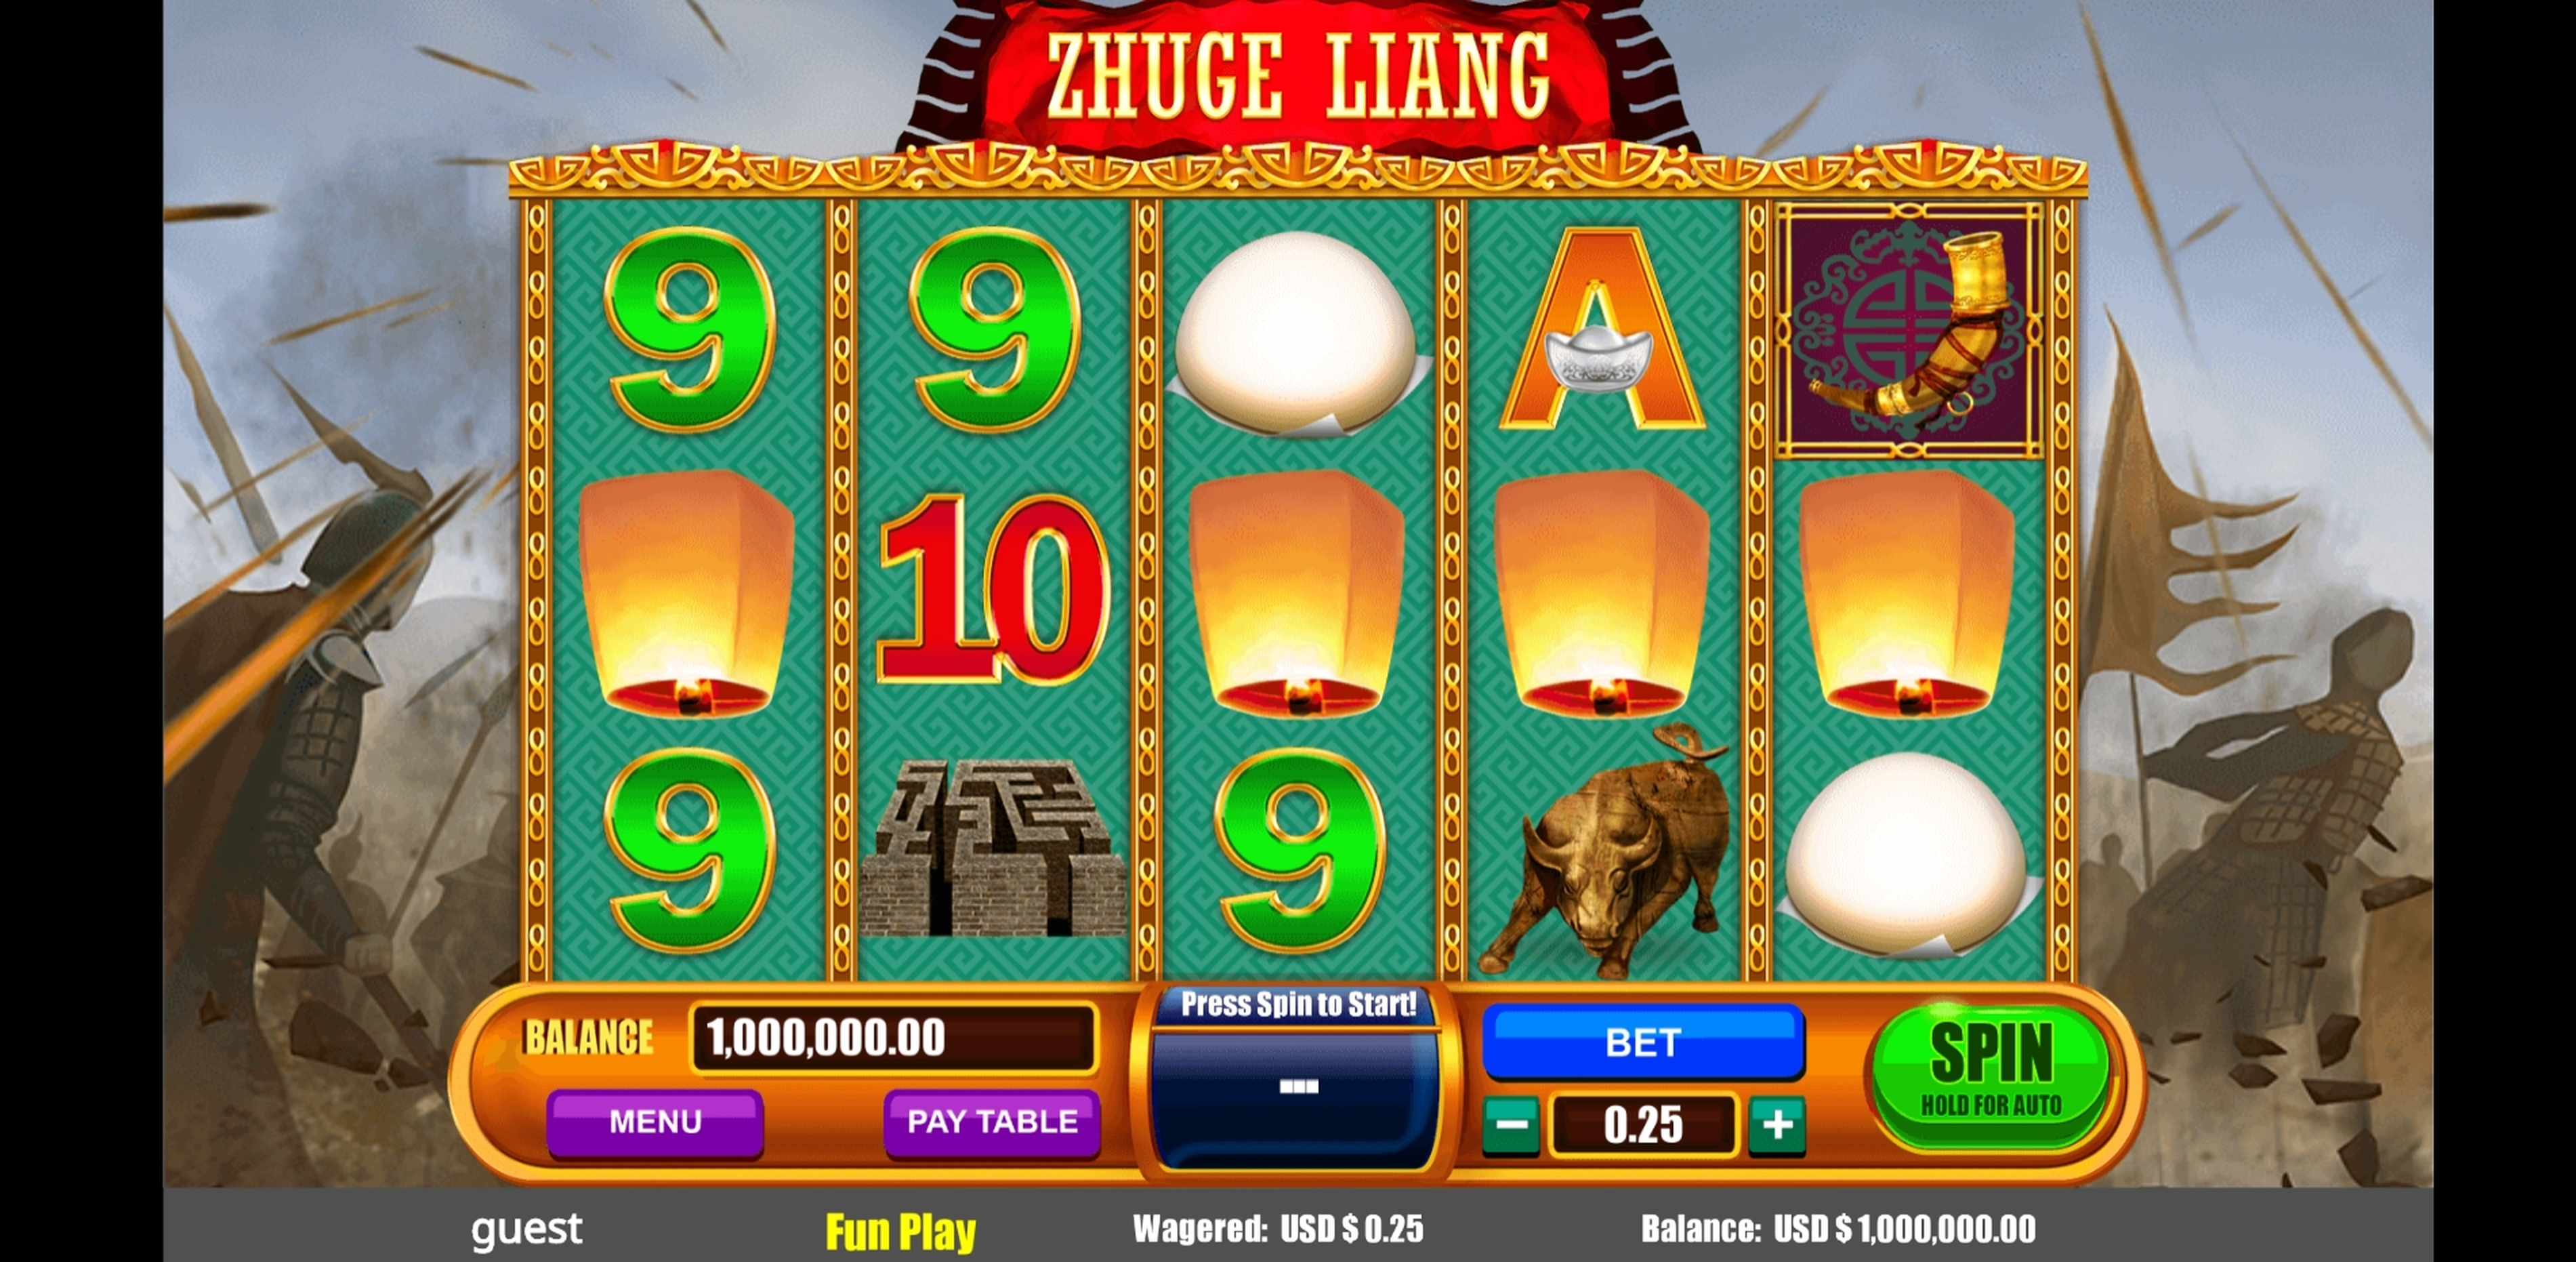 Reels in Zhuge Liang Slot Game by August Gaming